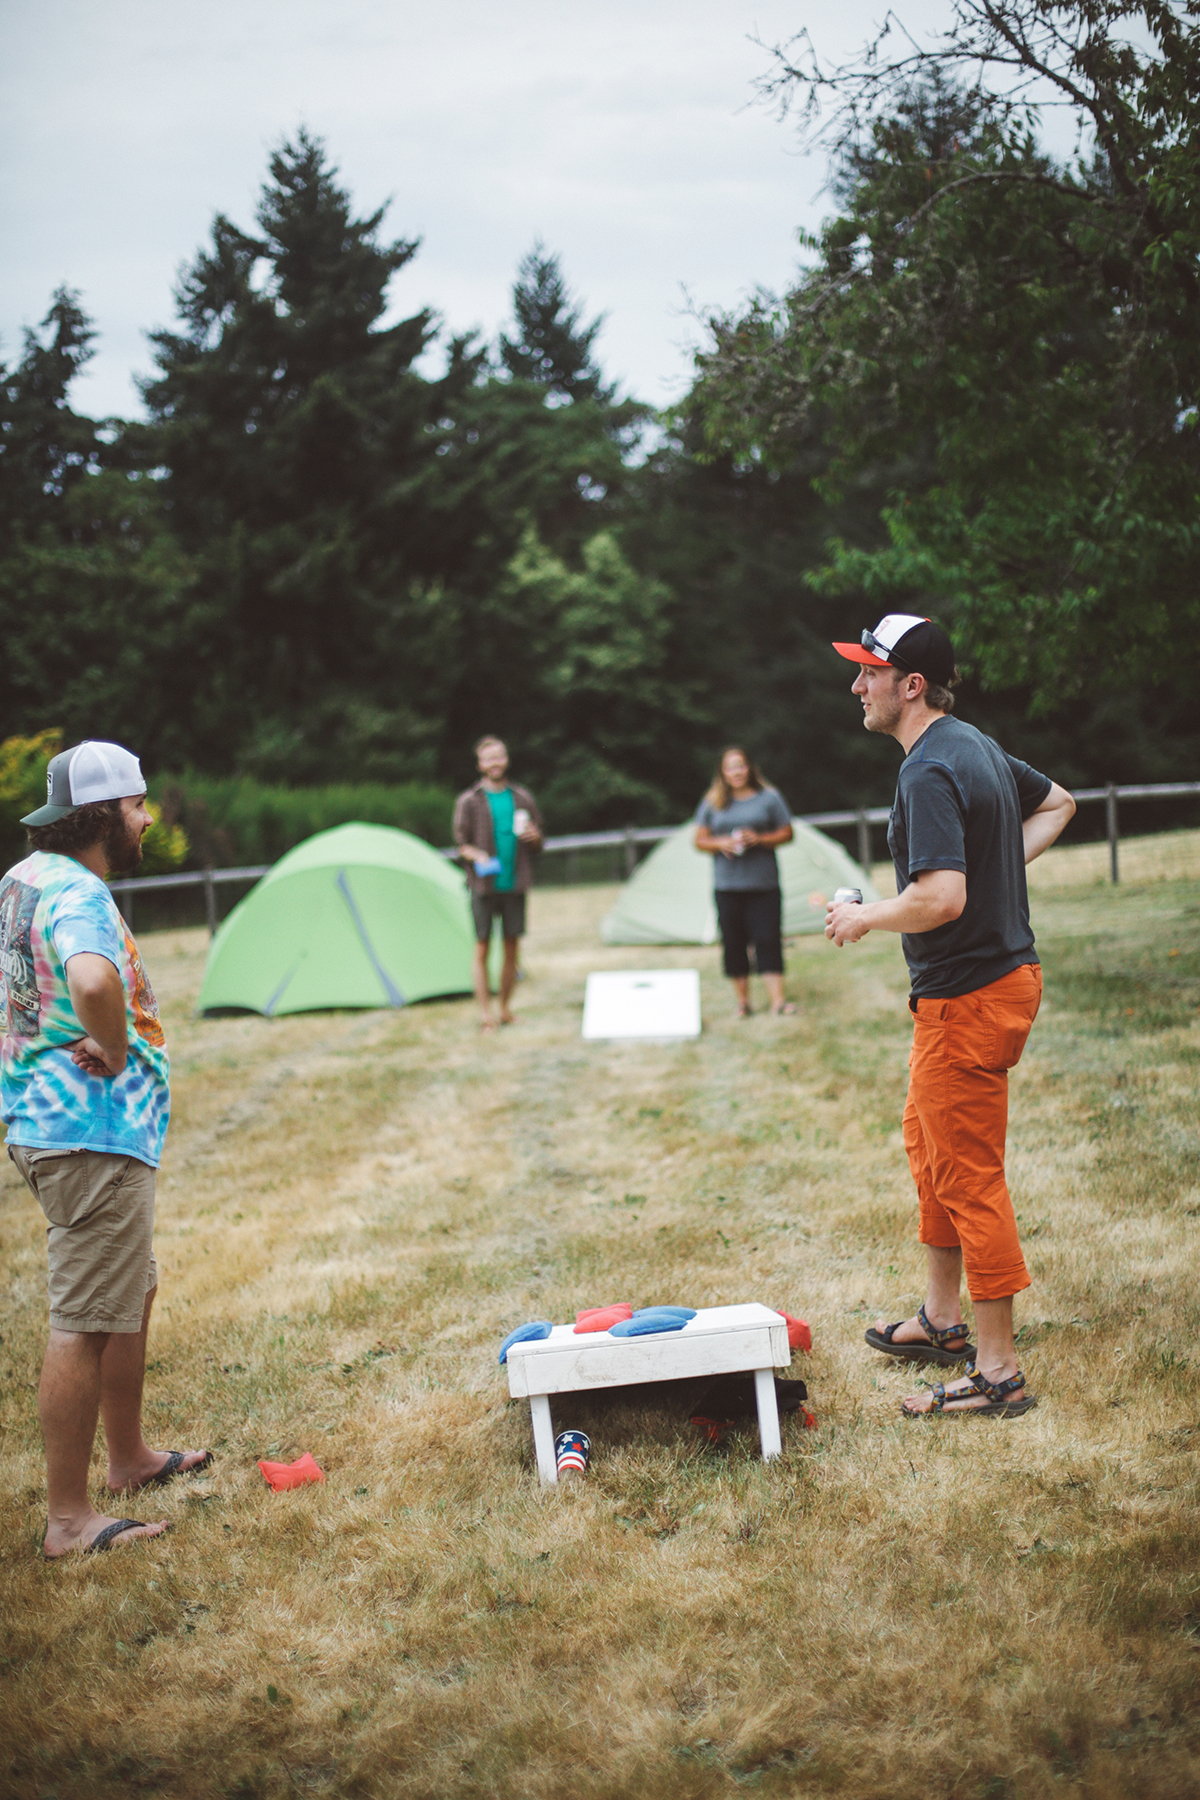 Camping and playing cornhole